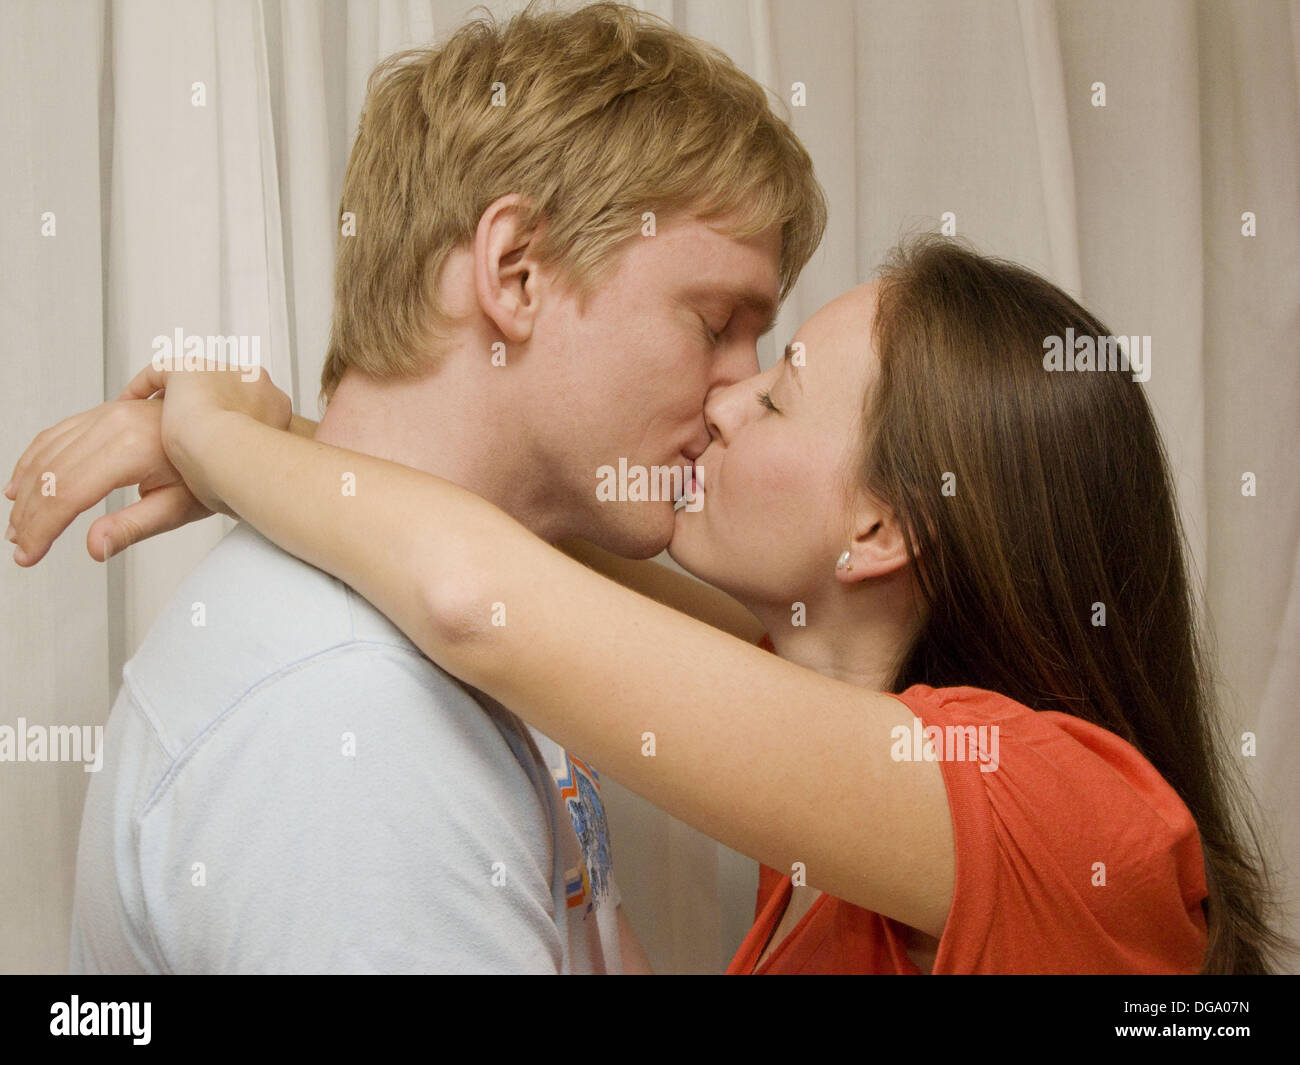 big hug and kiss stock photo: 61685337 - alamy